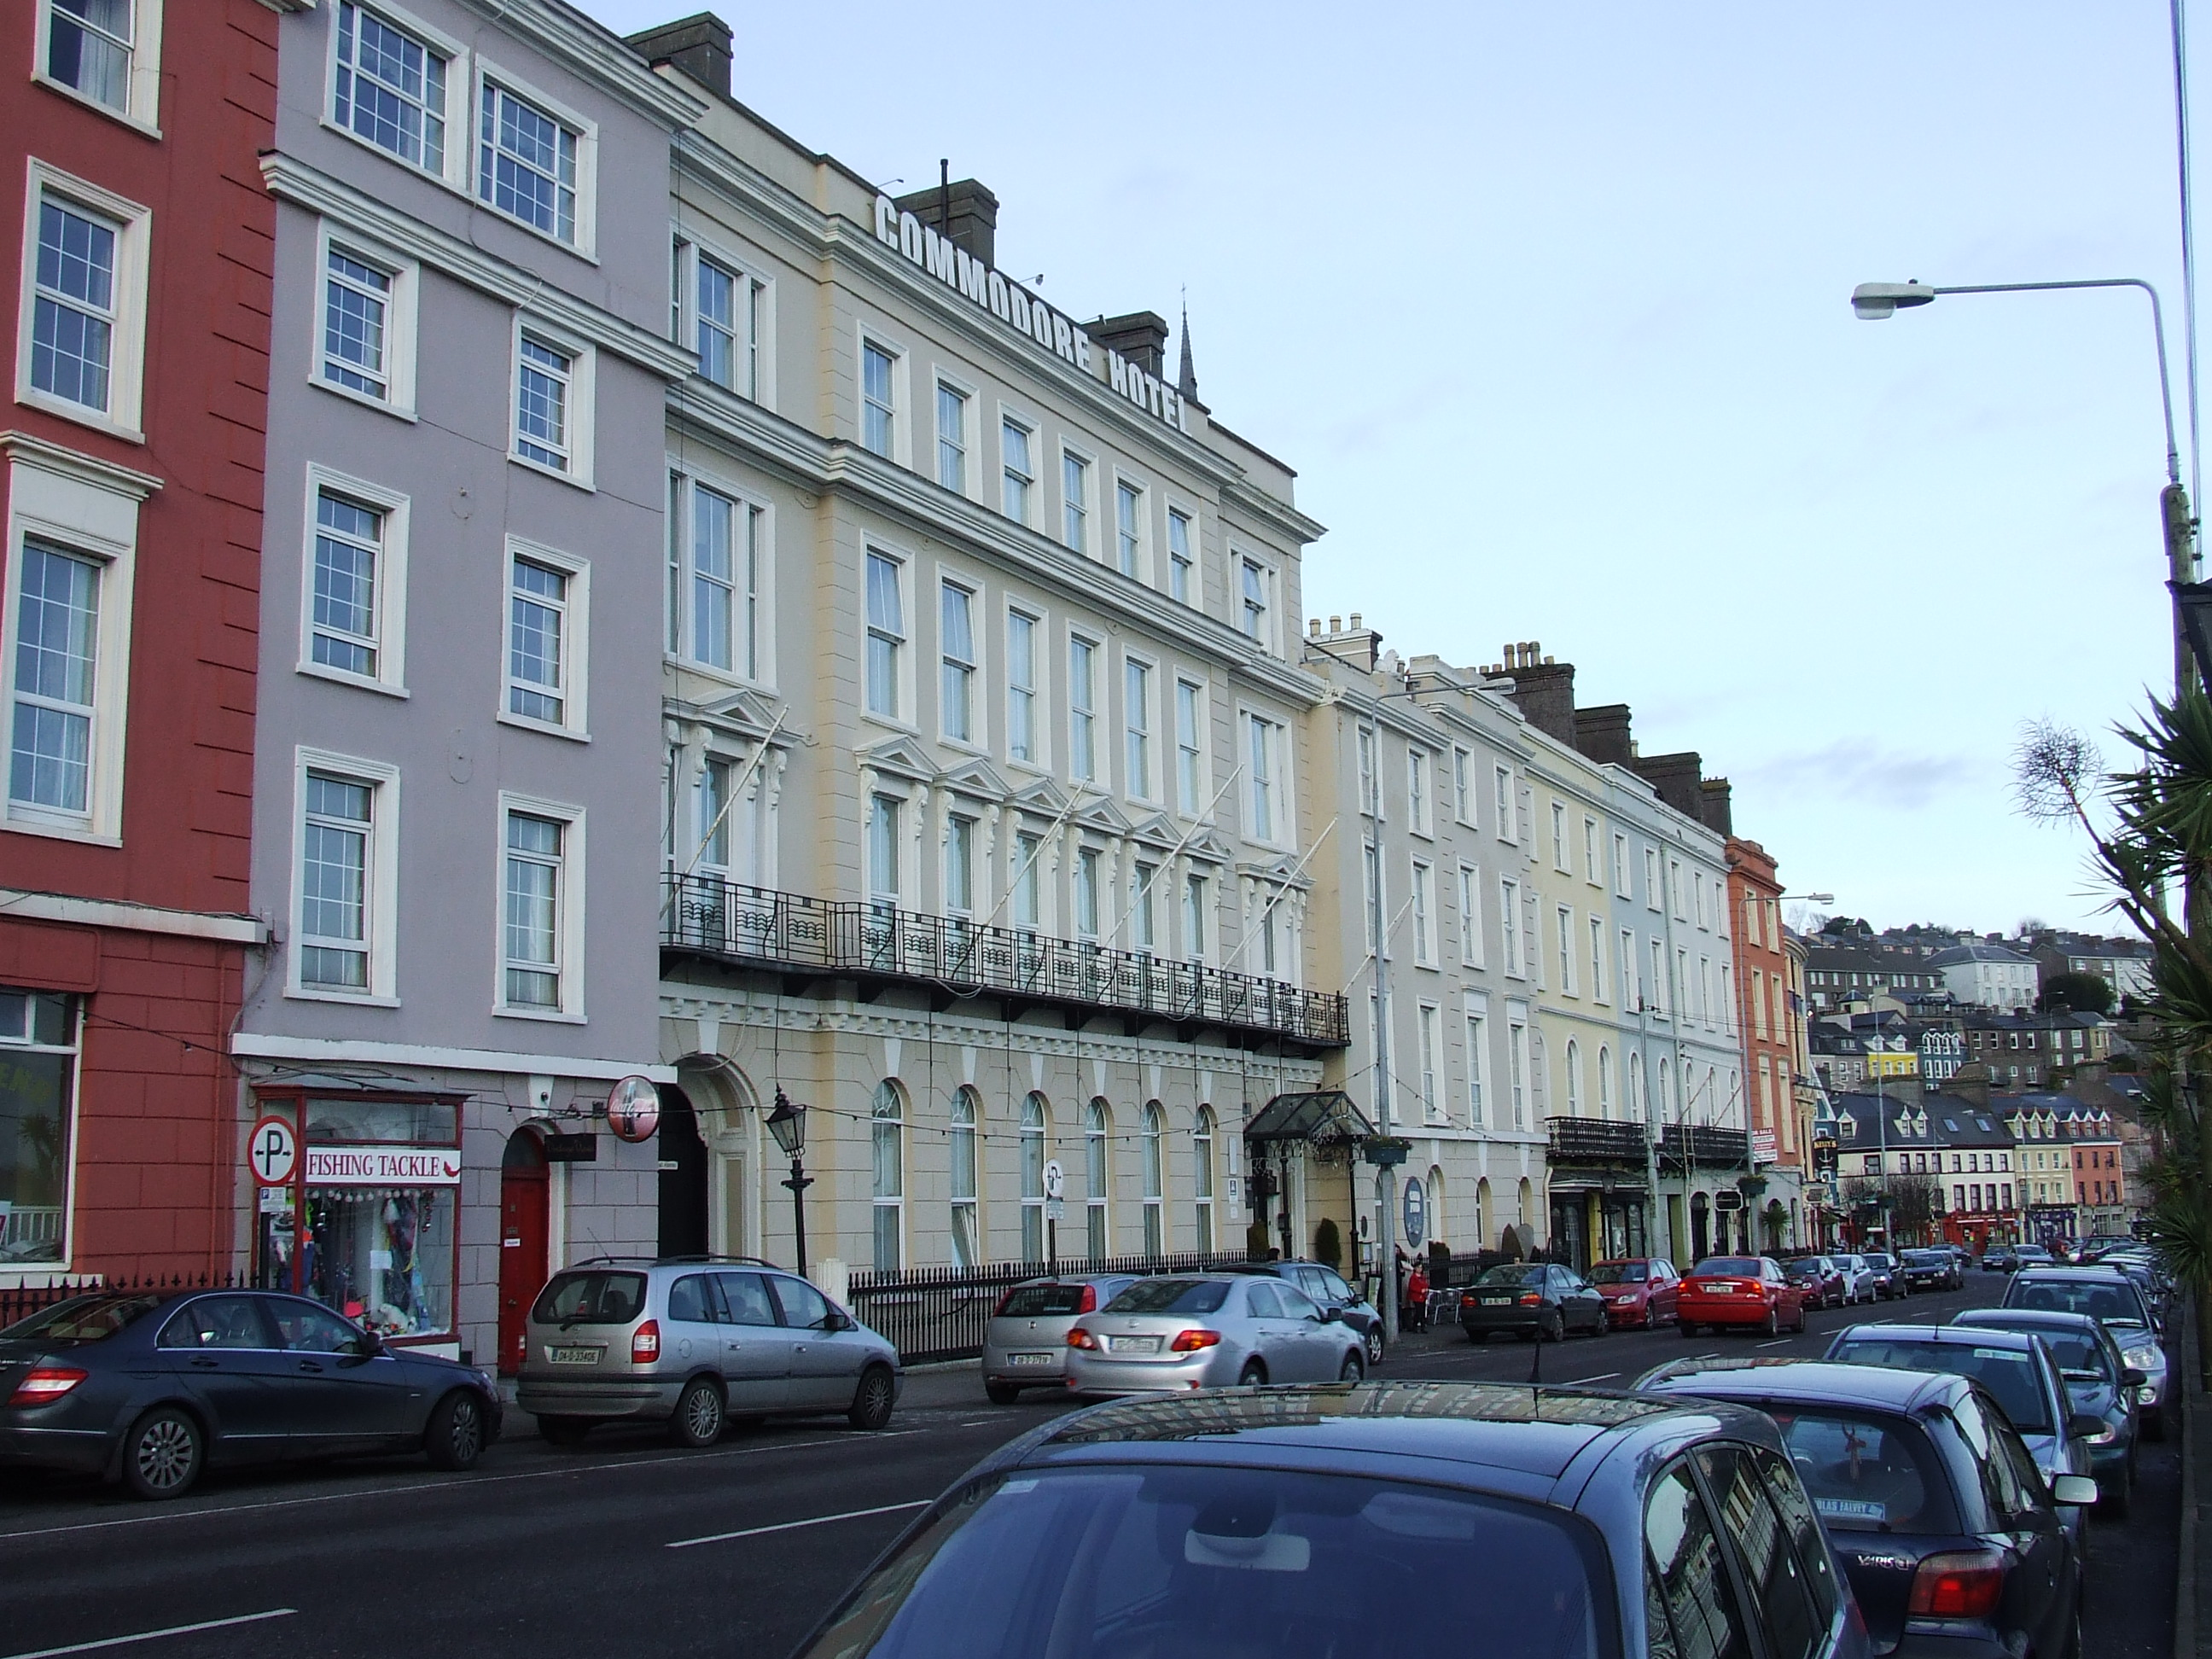 The main waterfront buildings in Cobh (Queenstown), Co. Cork as they appear today